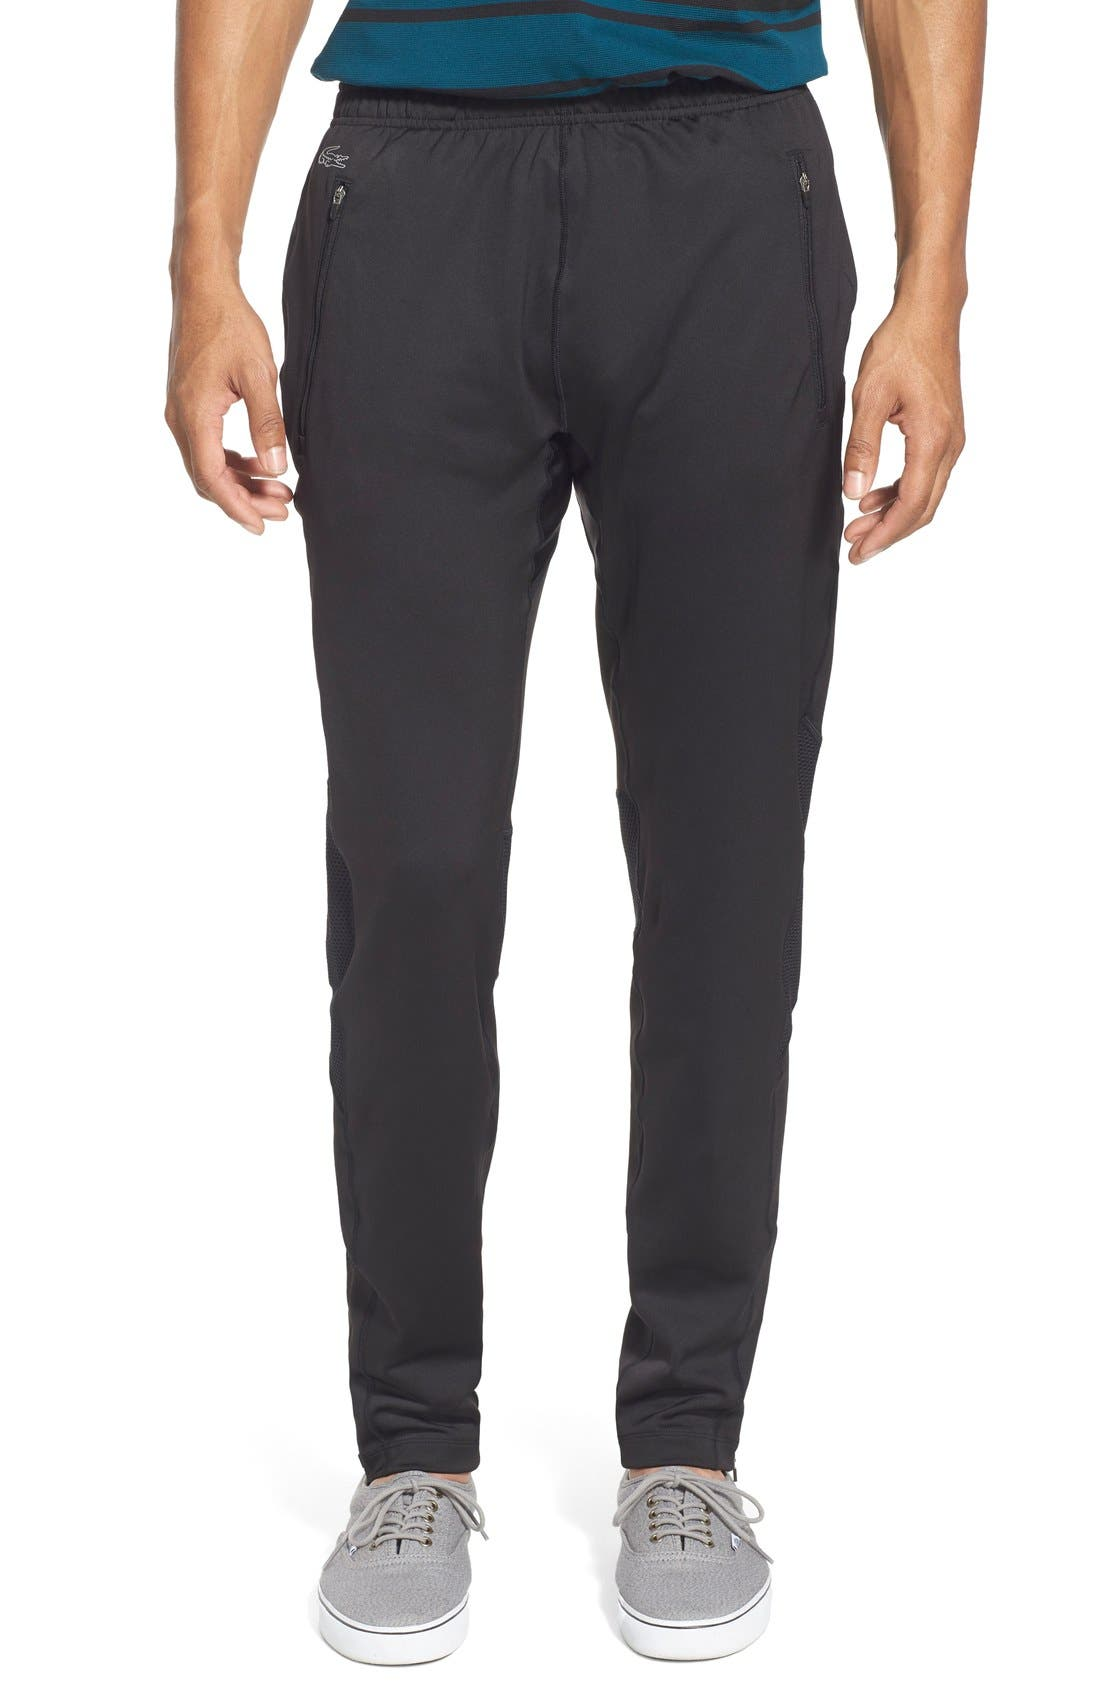 LACOSTE Sport Ultra Dry Stretch Performance Track Pants